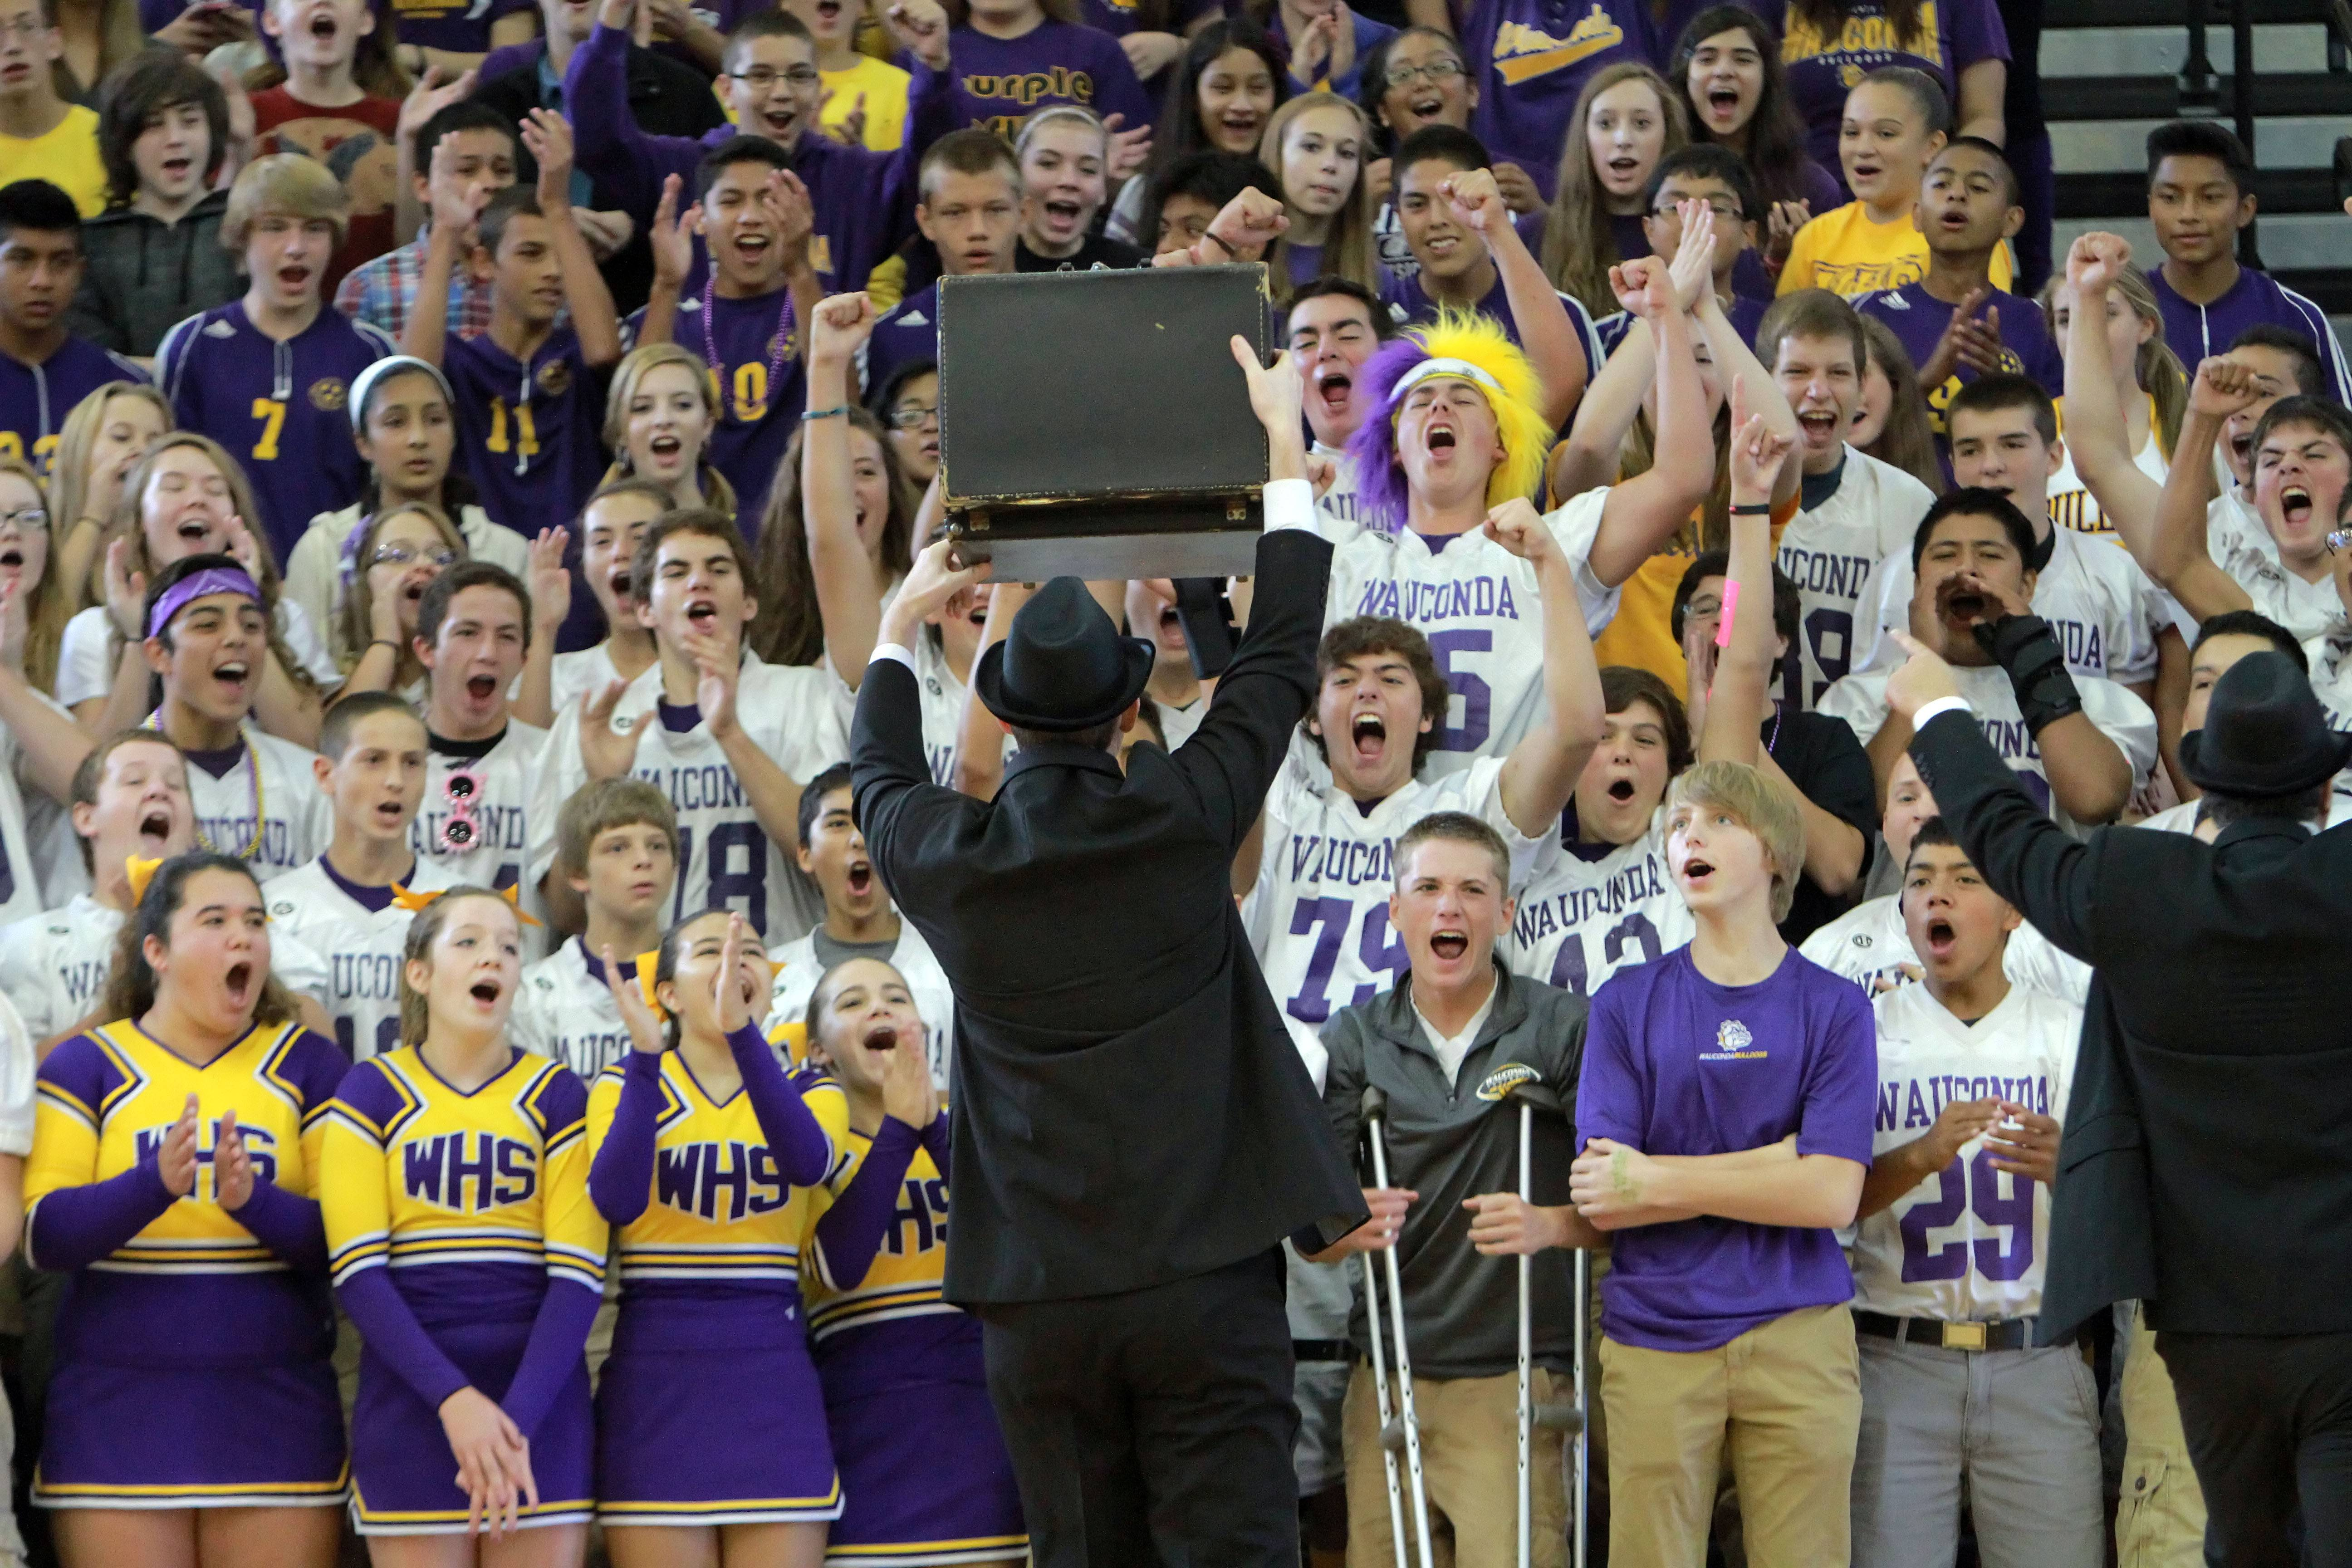 Math teacher Greg Dorgan gets the crowd revved up as he plays the role of Elwood Blues during a homecoming assembly Friday at Wauconda High School.